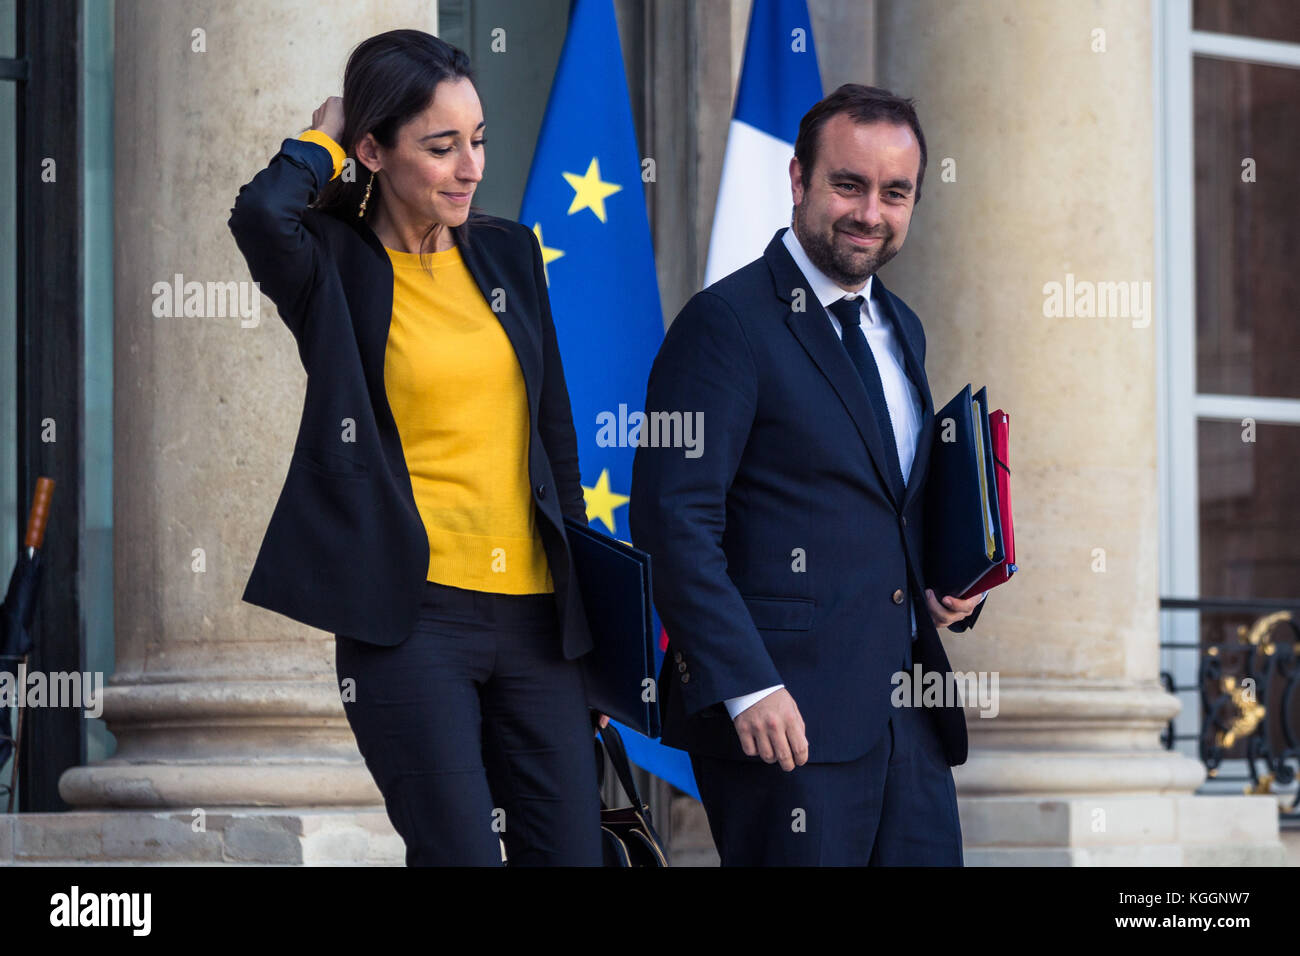 Paul Barlet Le Pictorium Exit Of The Council Of Ministers And